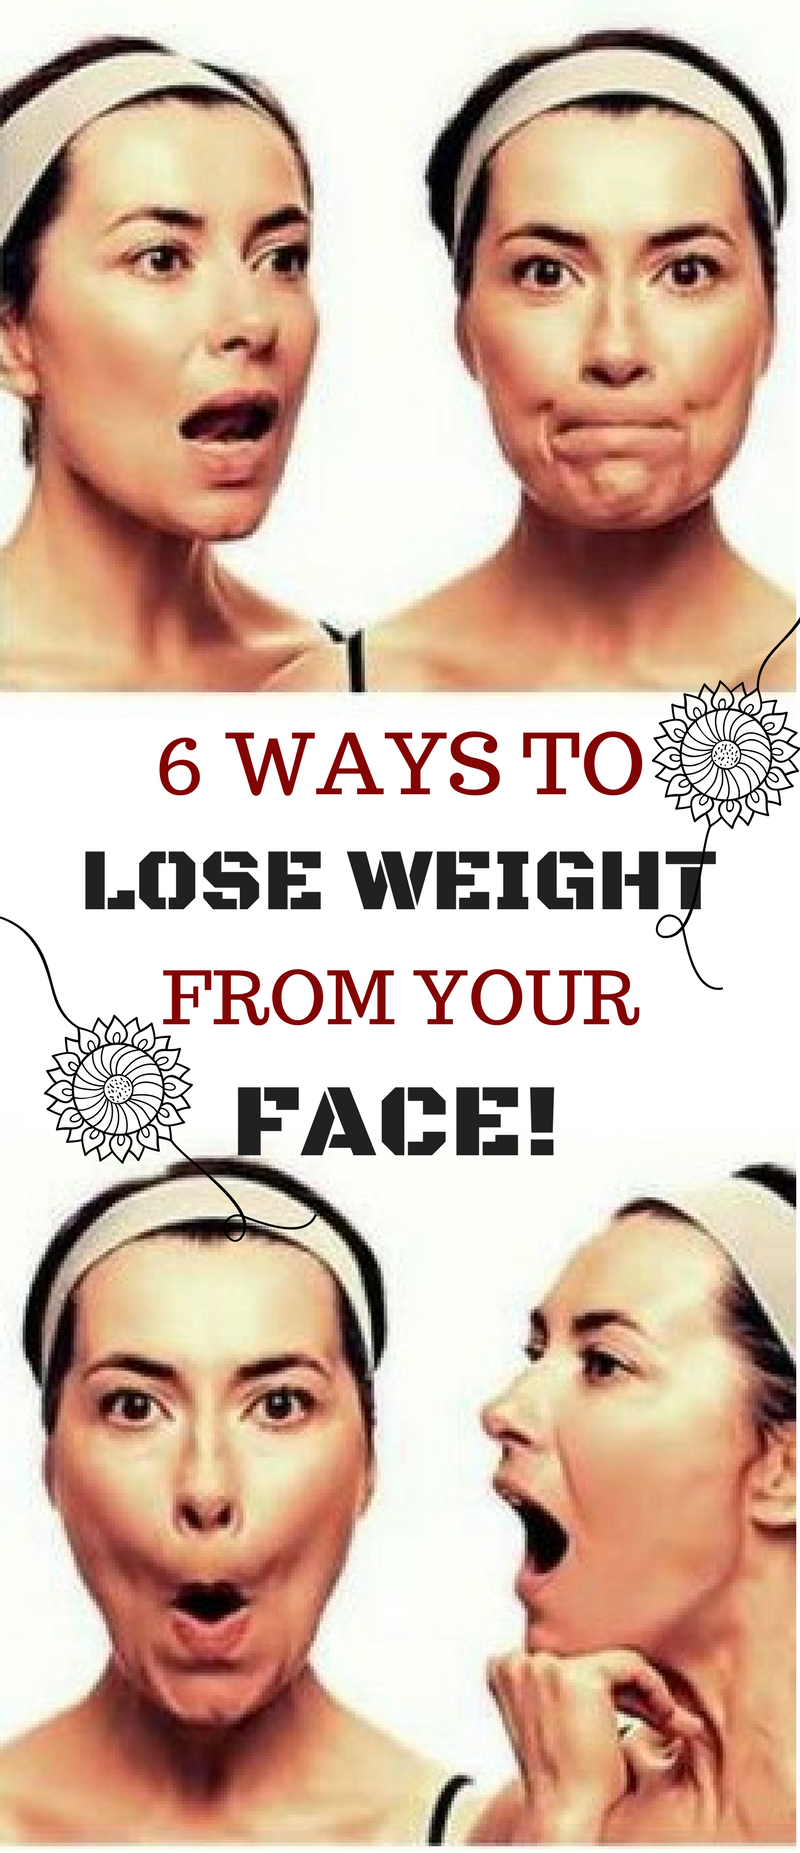 6 ways to lose weight from your face fitness facts workout and 6 ways to lose weight from your face ccuart Image collections